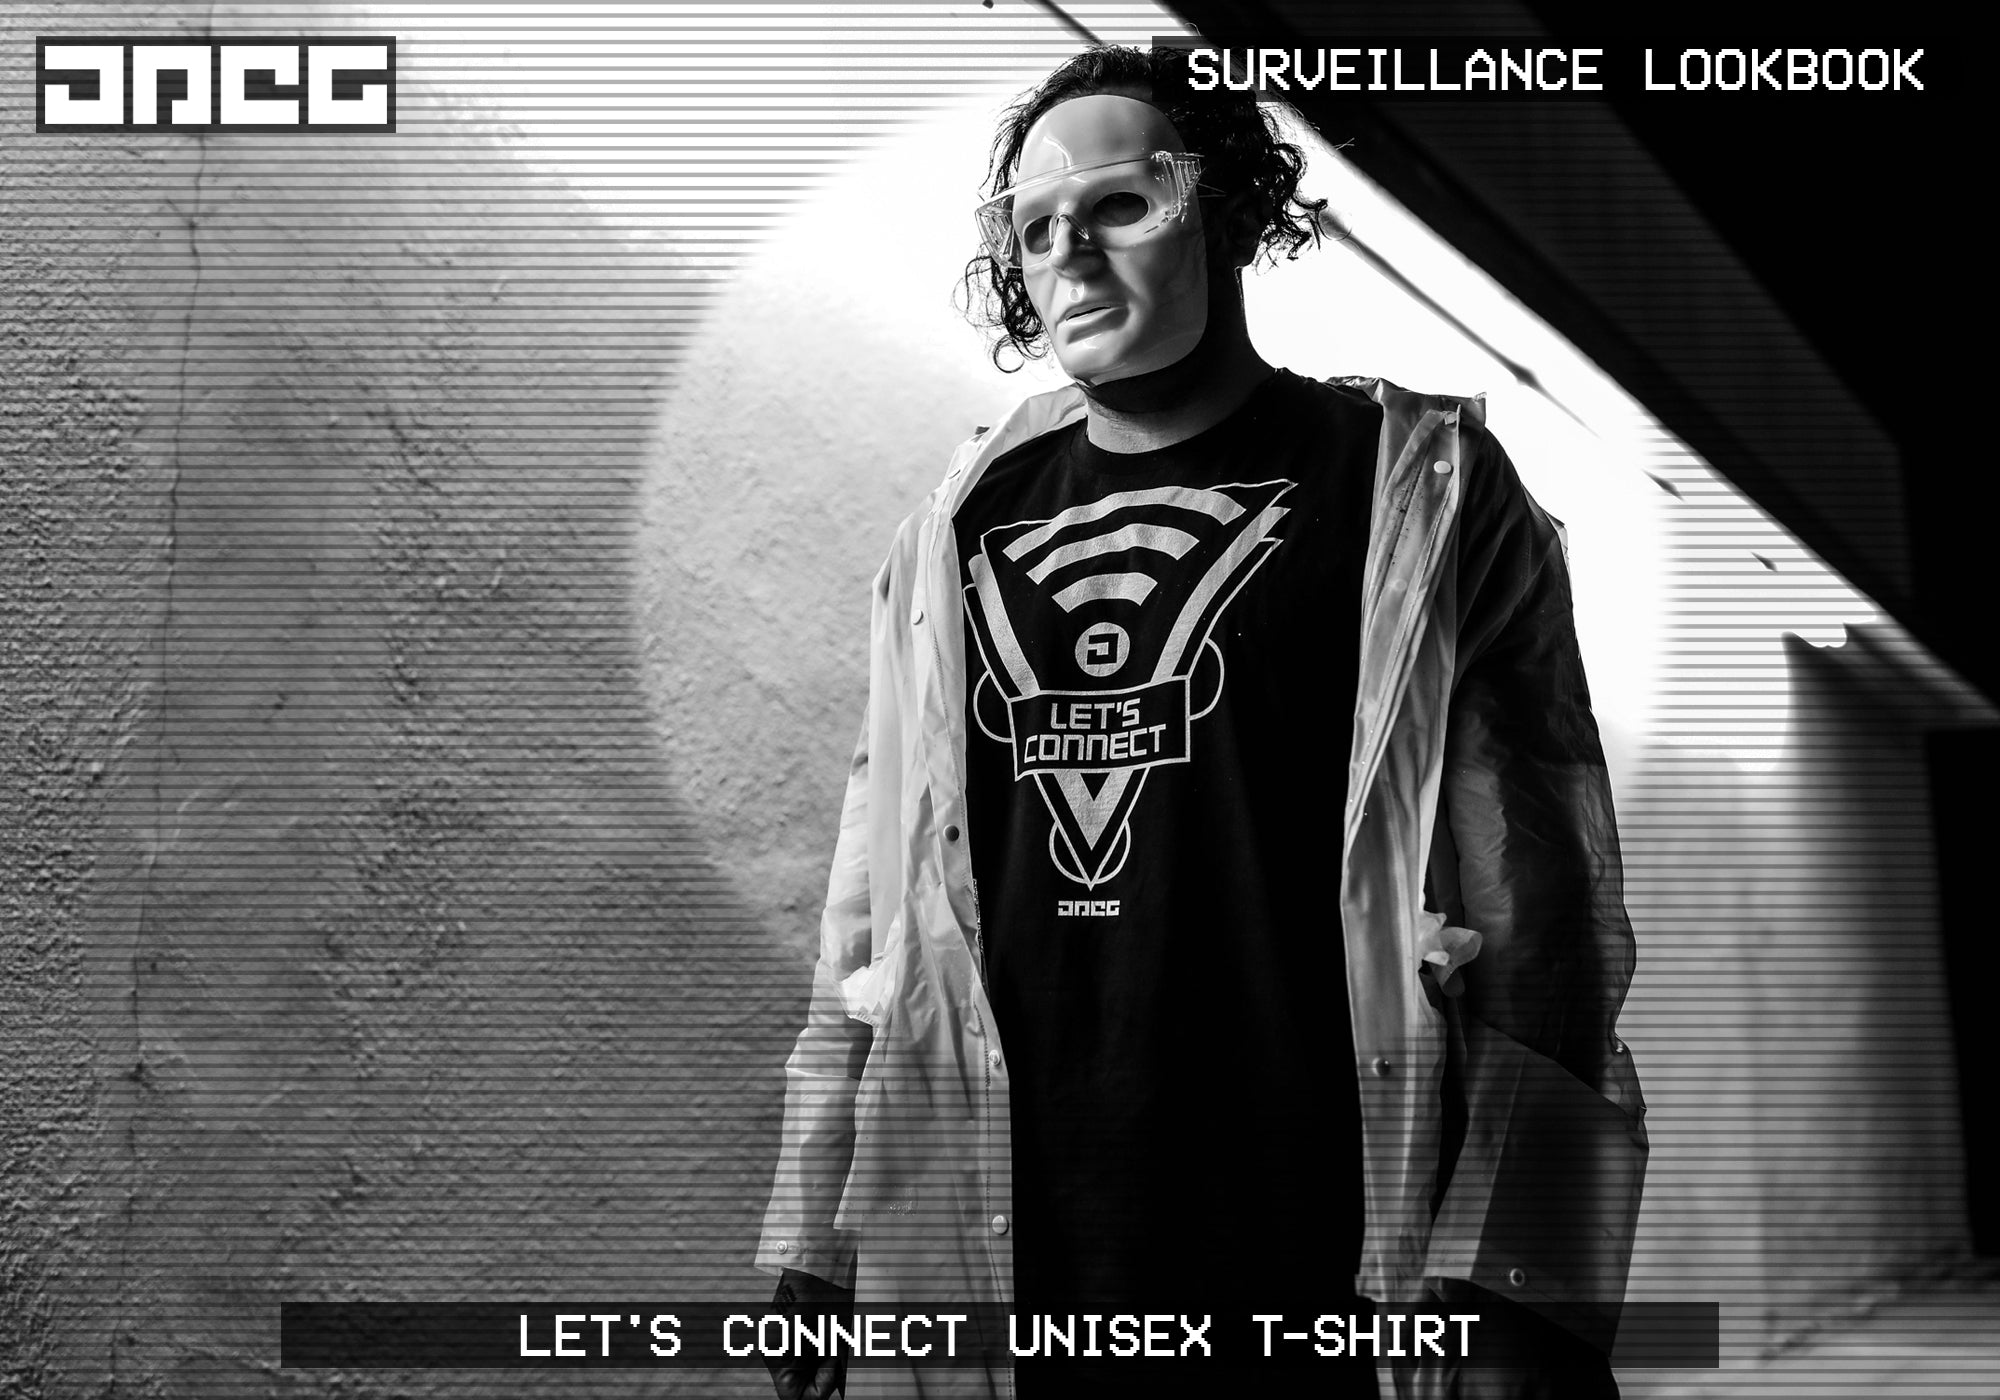 jpeg lookbook surveillance webstore cyber goth cult shop 05